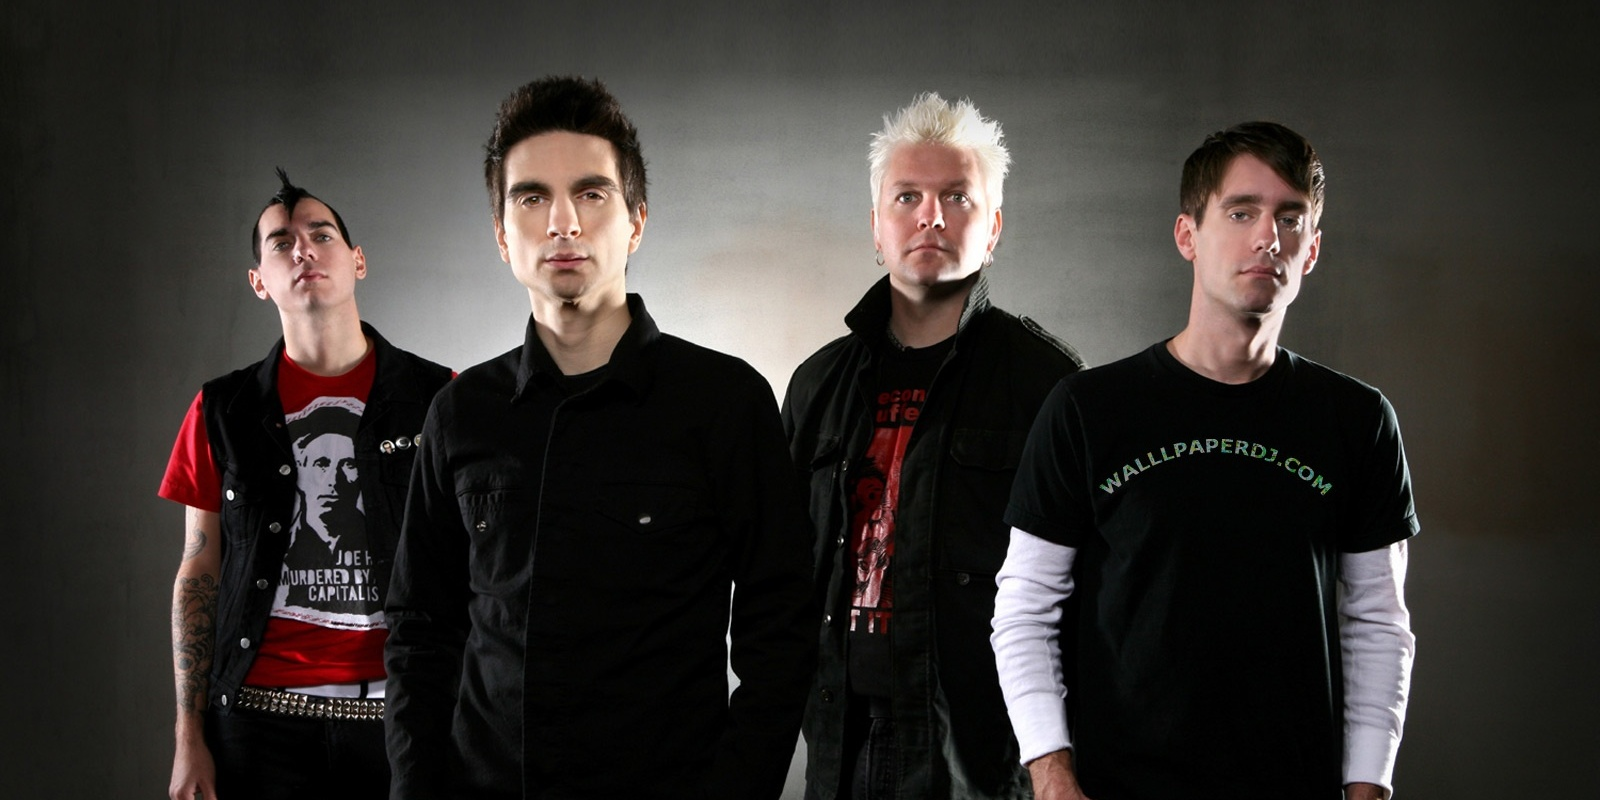 Punk rock outfit Anti-Flag to make Singapore debut